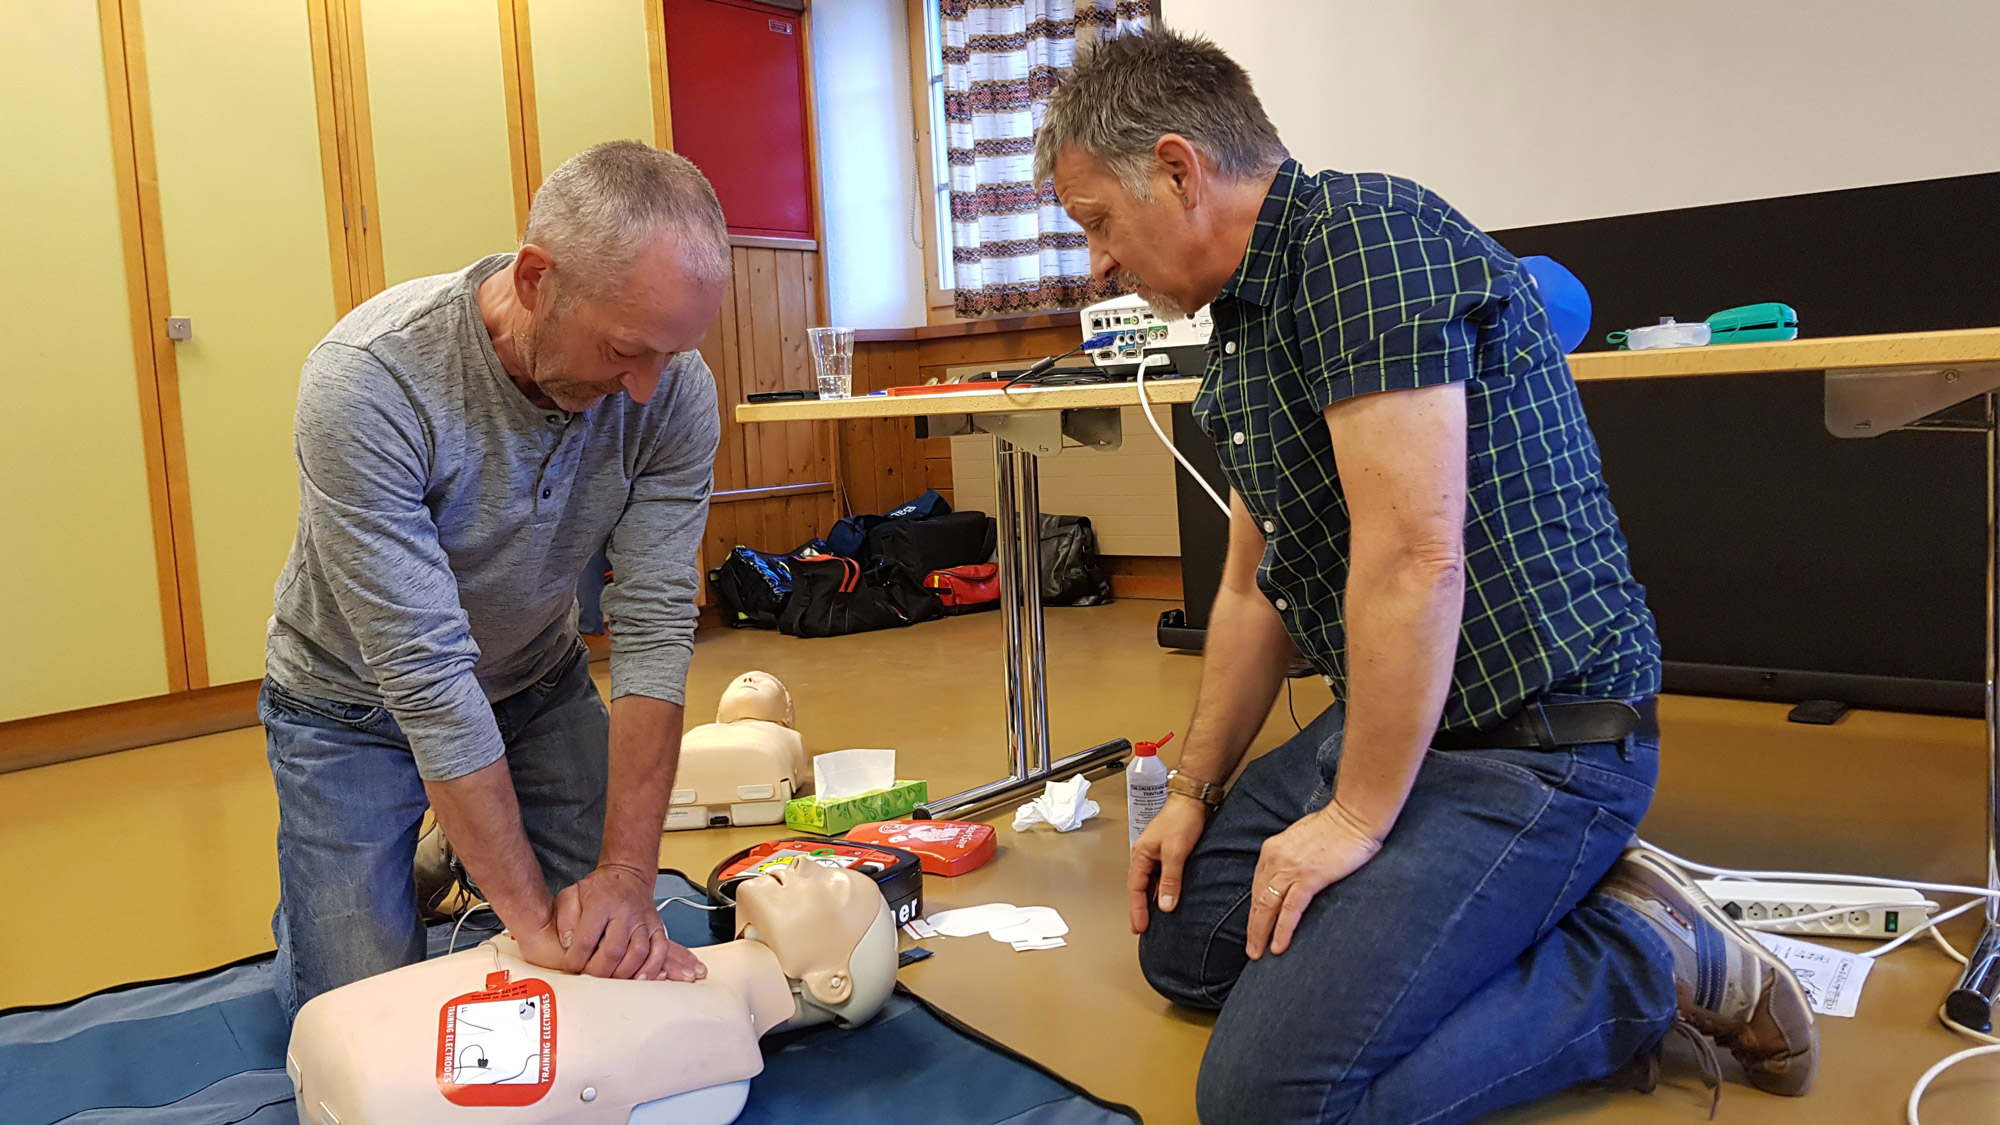 cpr-aed-kurs-3